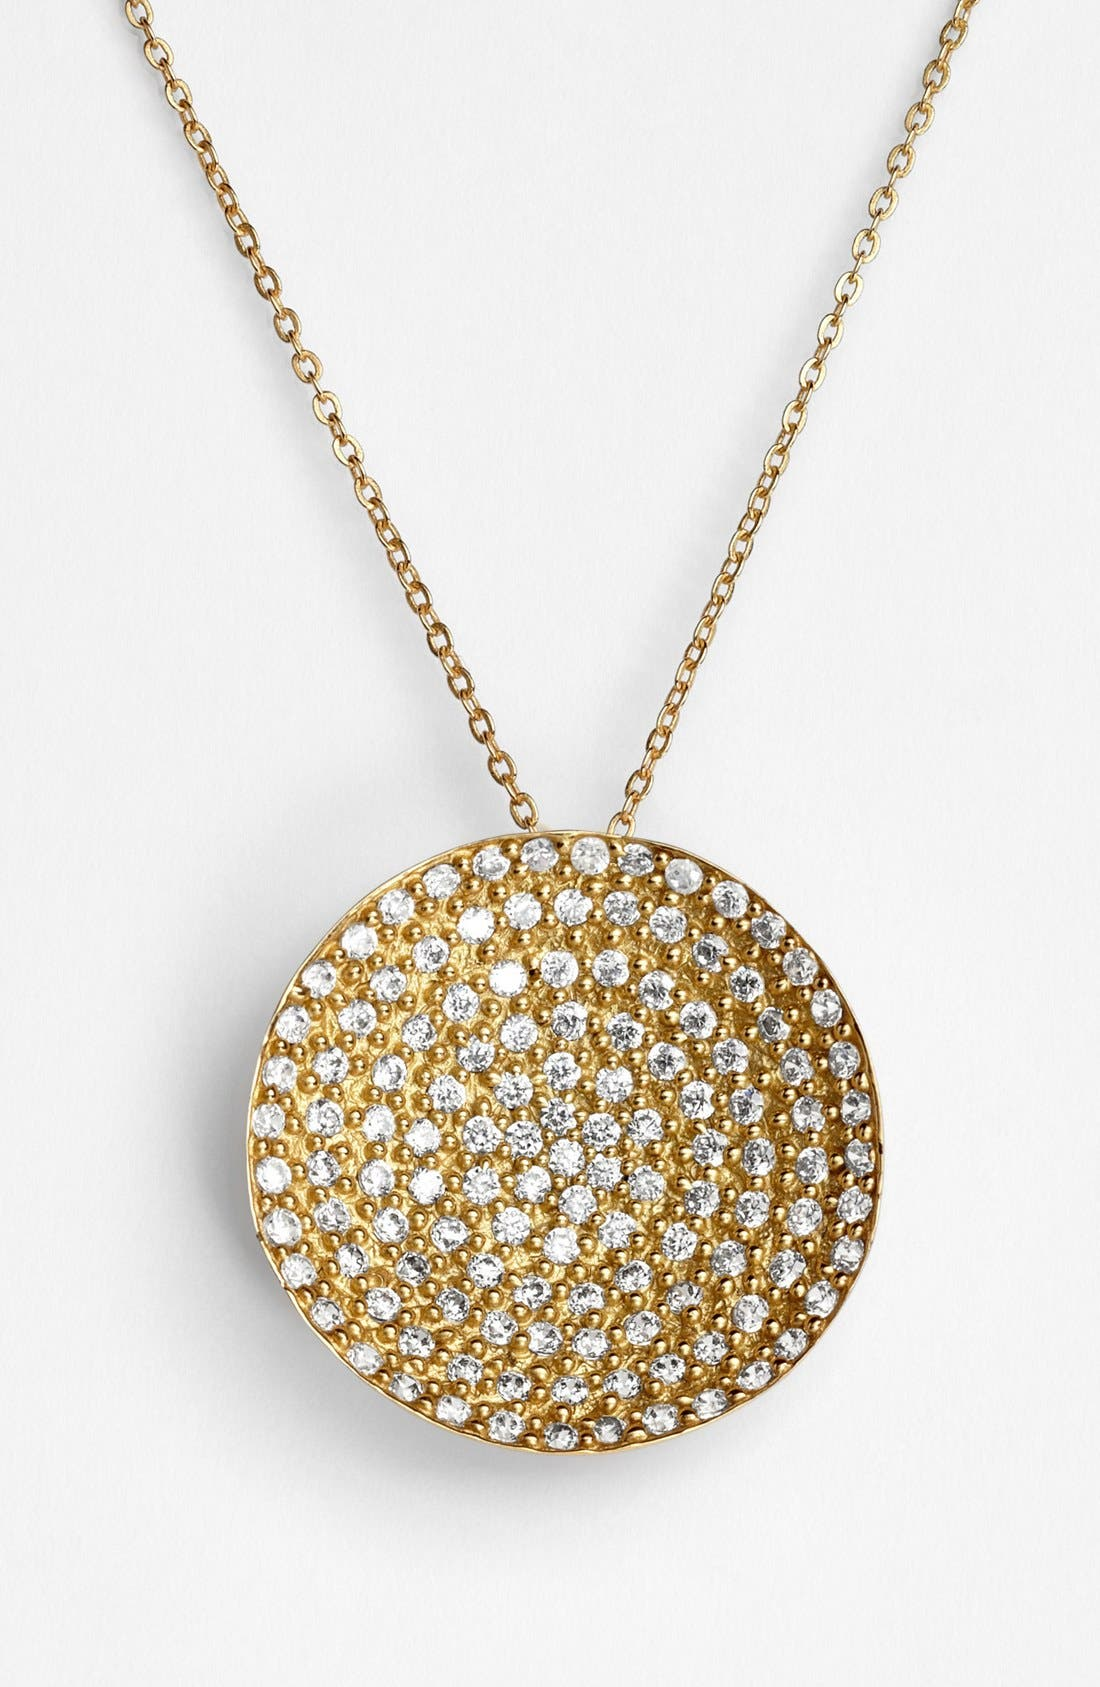 MELINDA MARIA 'Nicole' Pendant Necklace in Gold/ Clear